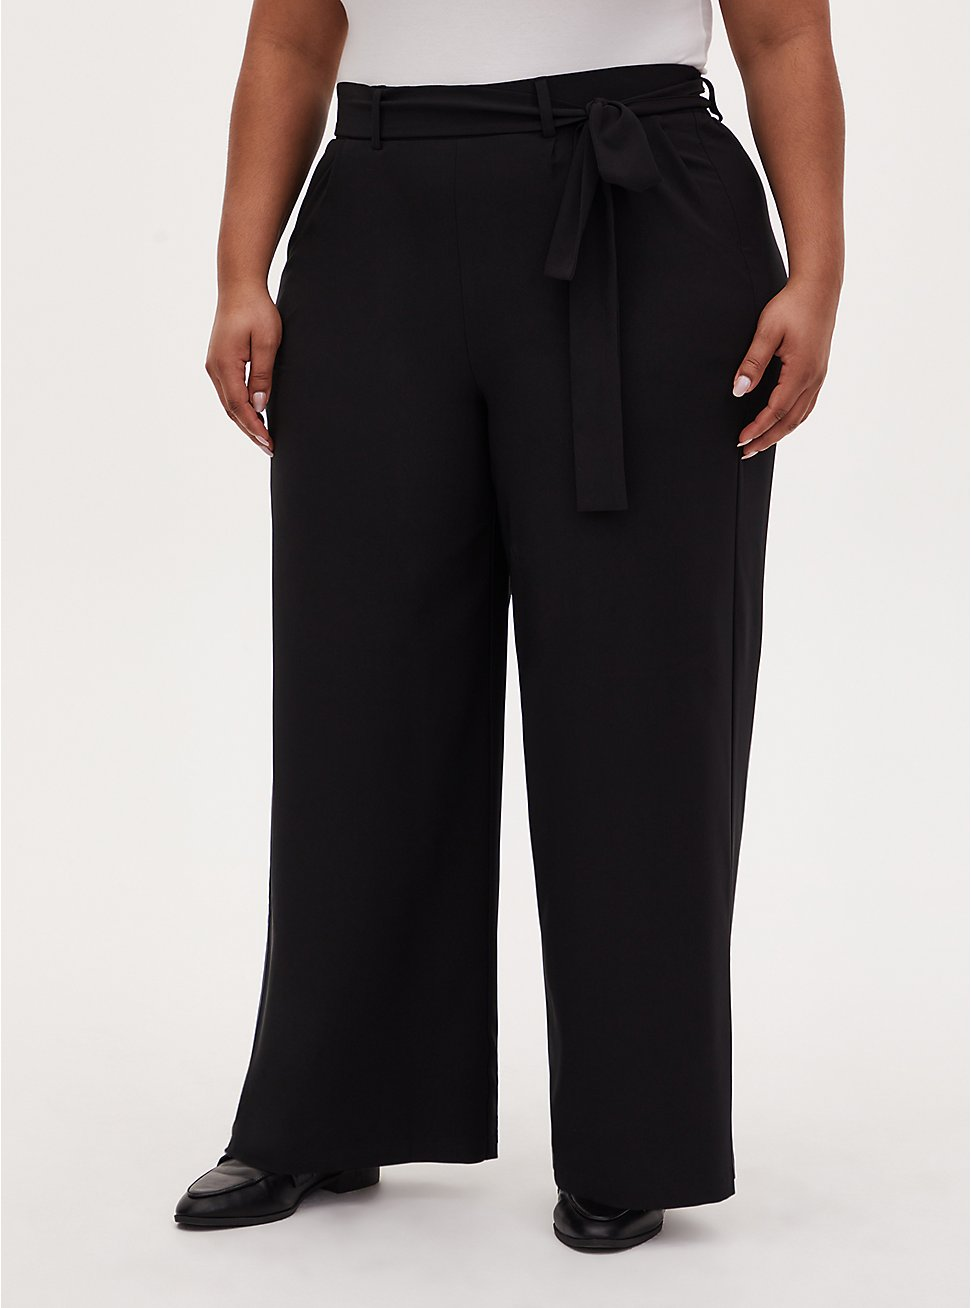 Plus Size Black Crepe Self Tie Wide Leg Pant, DEEP BLACK, hi-res